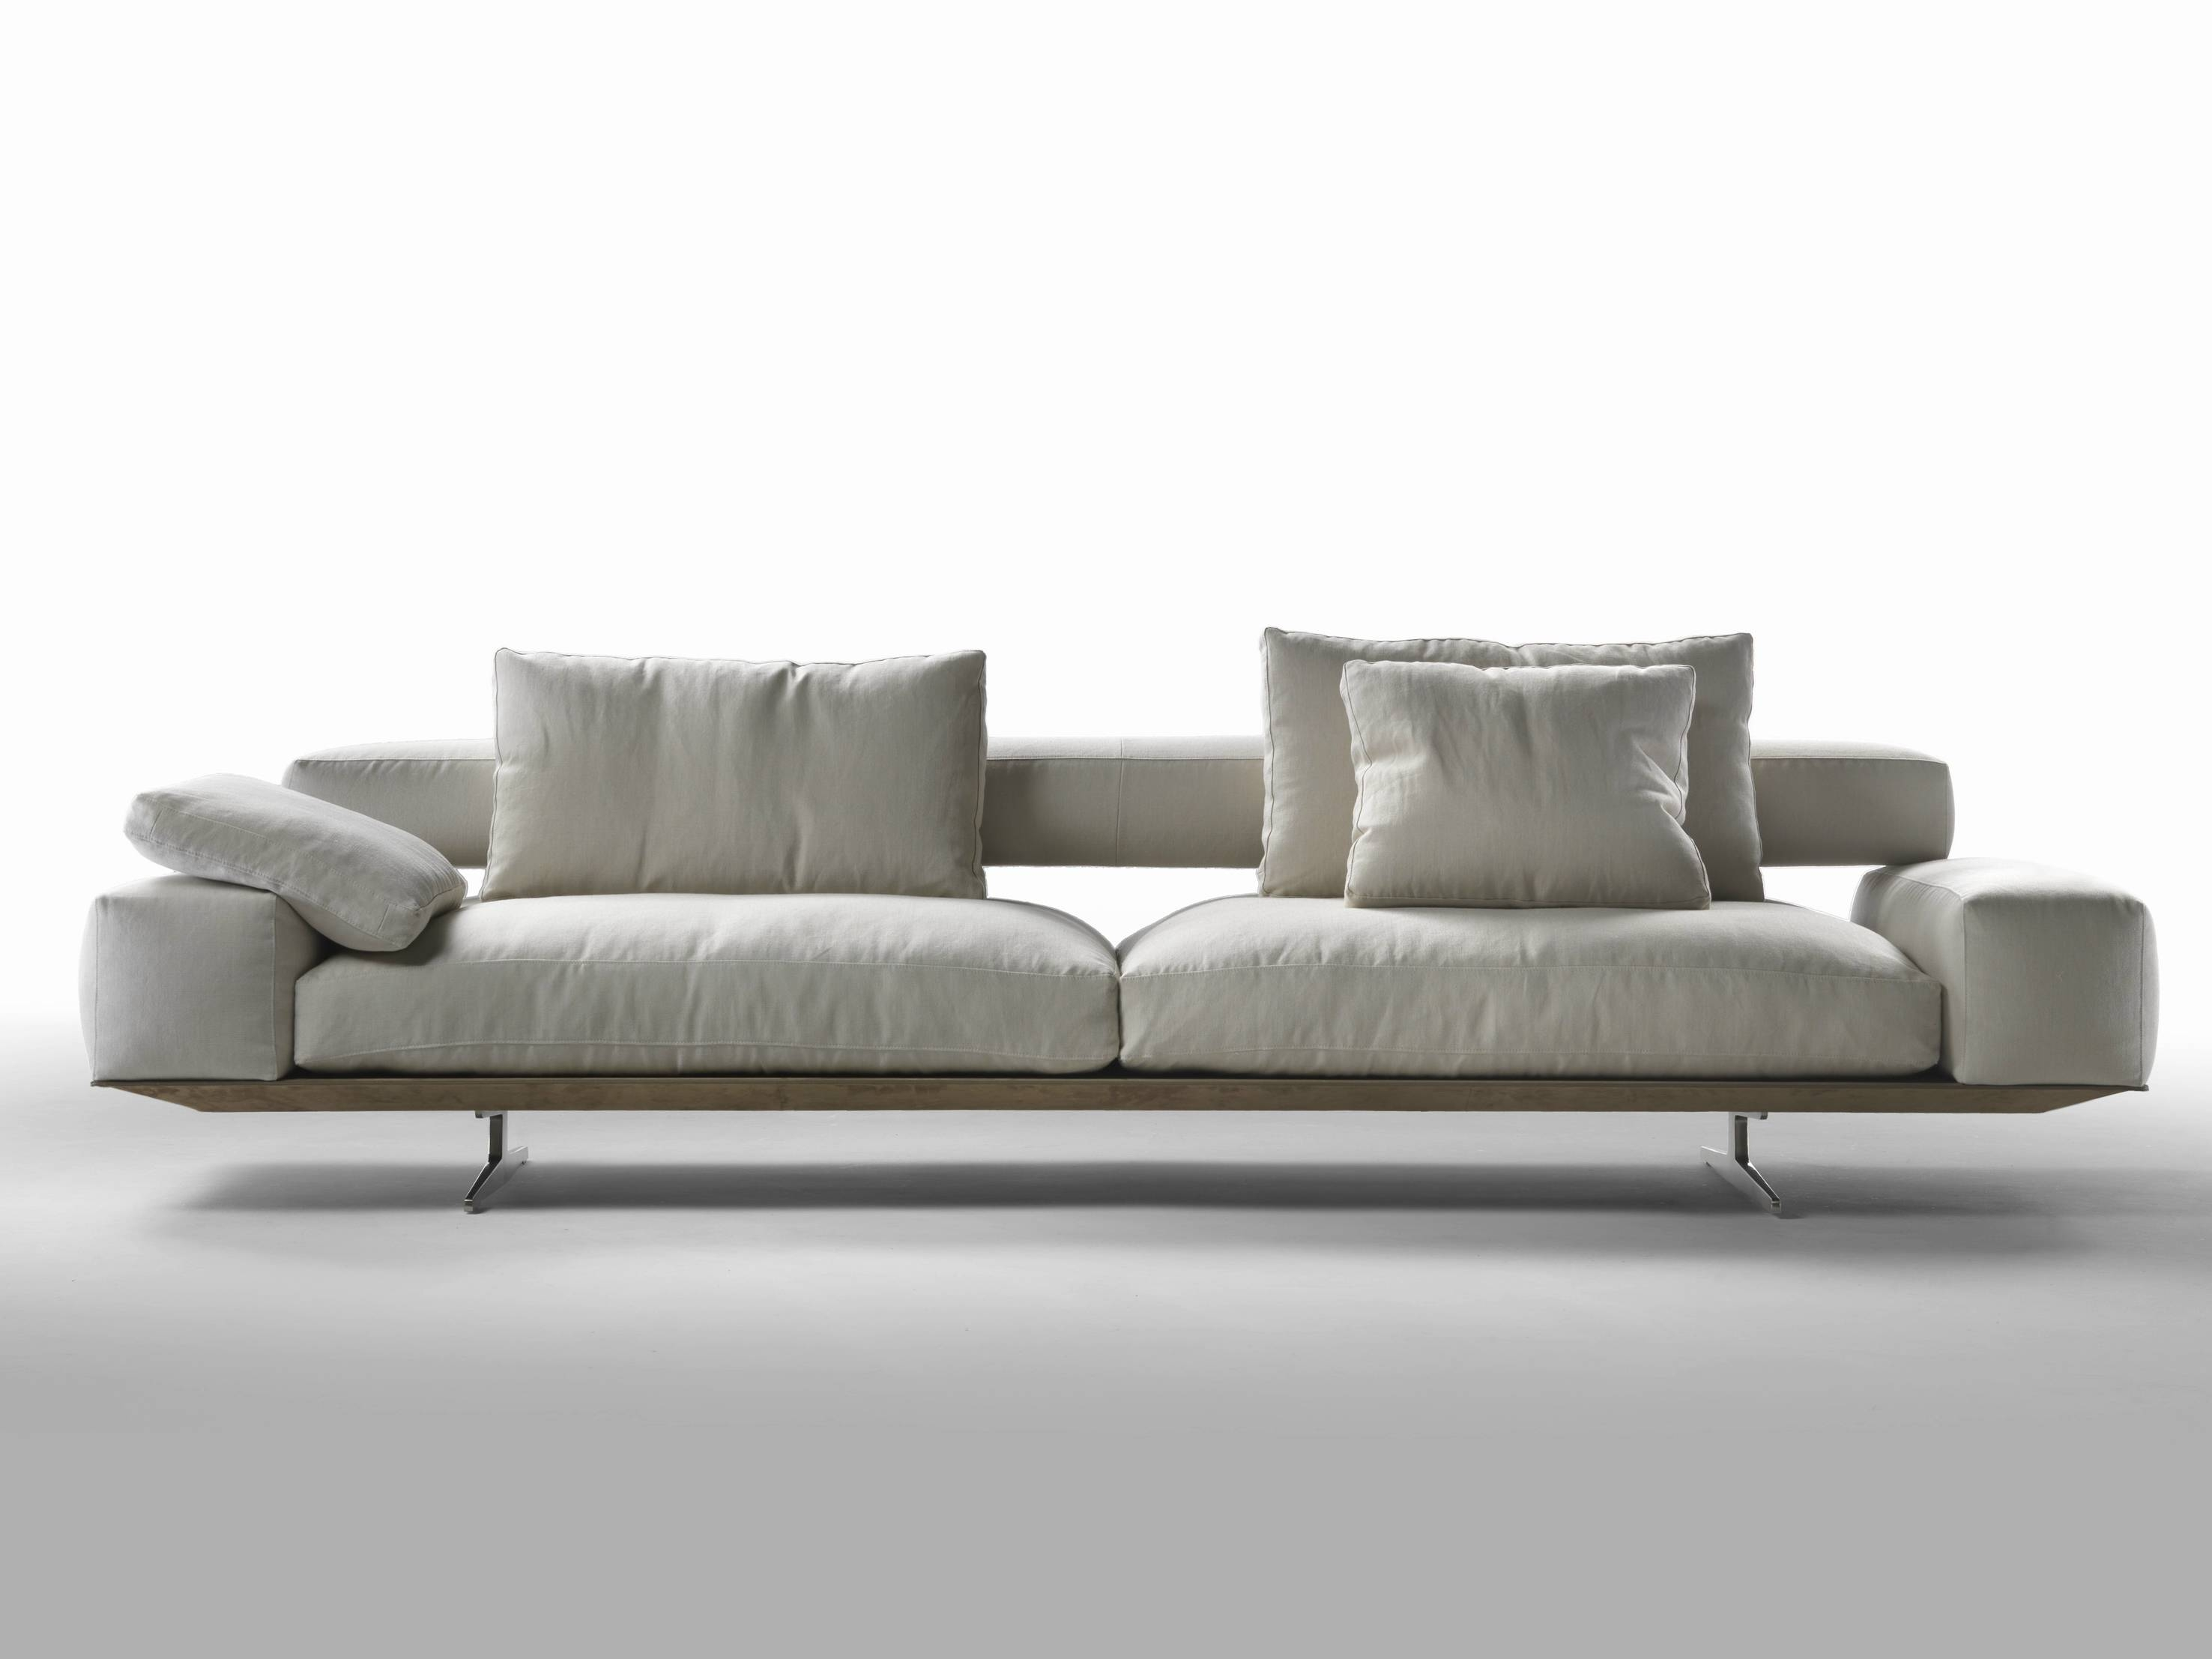 Wing Sofaantonio Citterio For Flexform | Sohomod Blog for Flexform Sofas (Image 25 of 25)